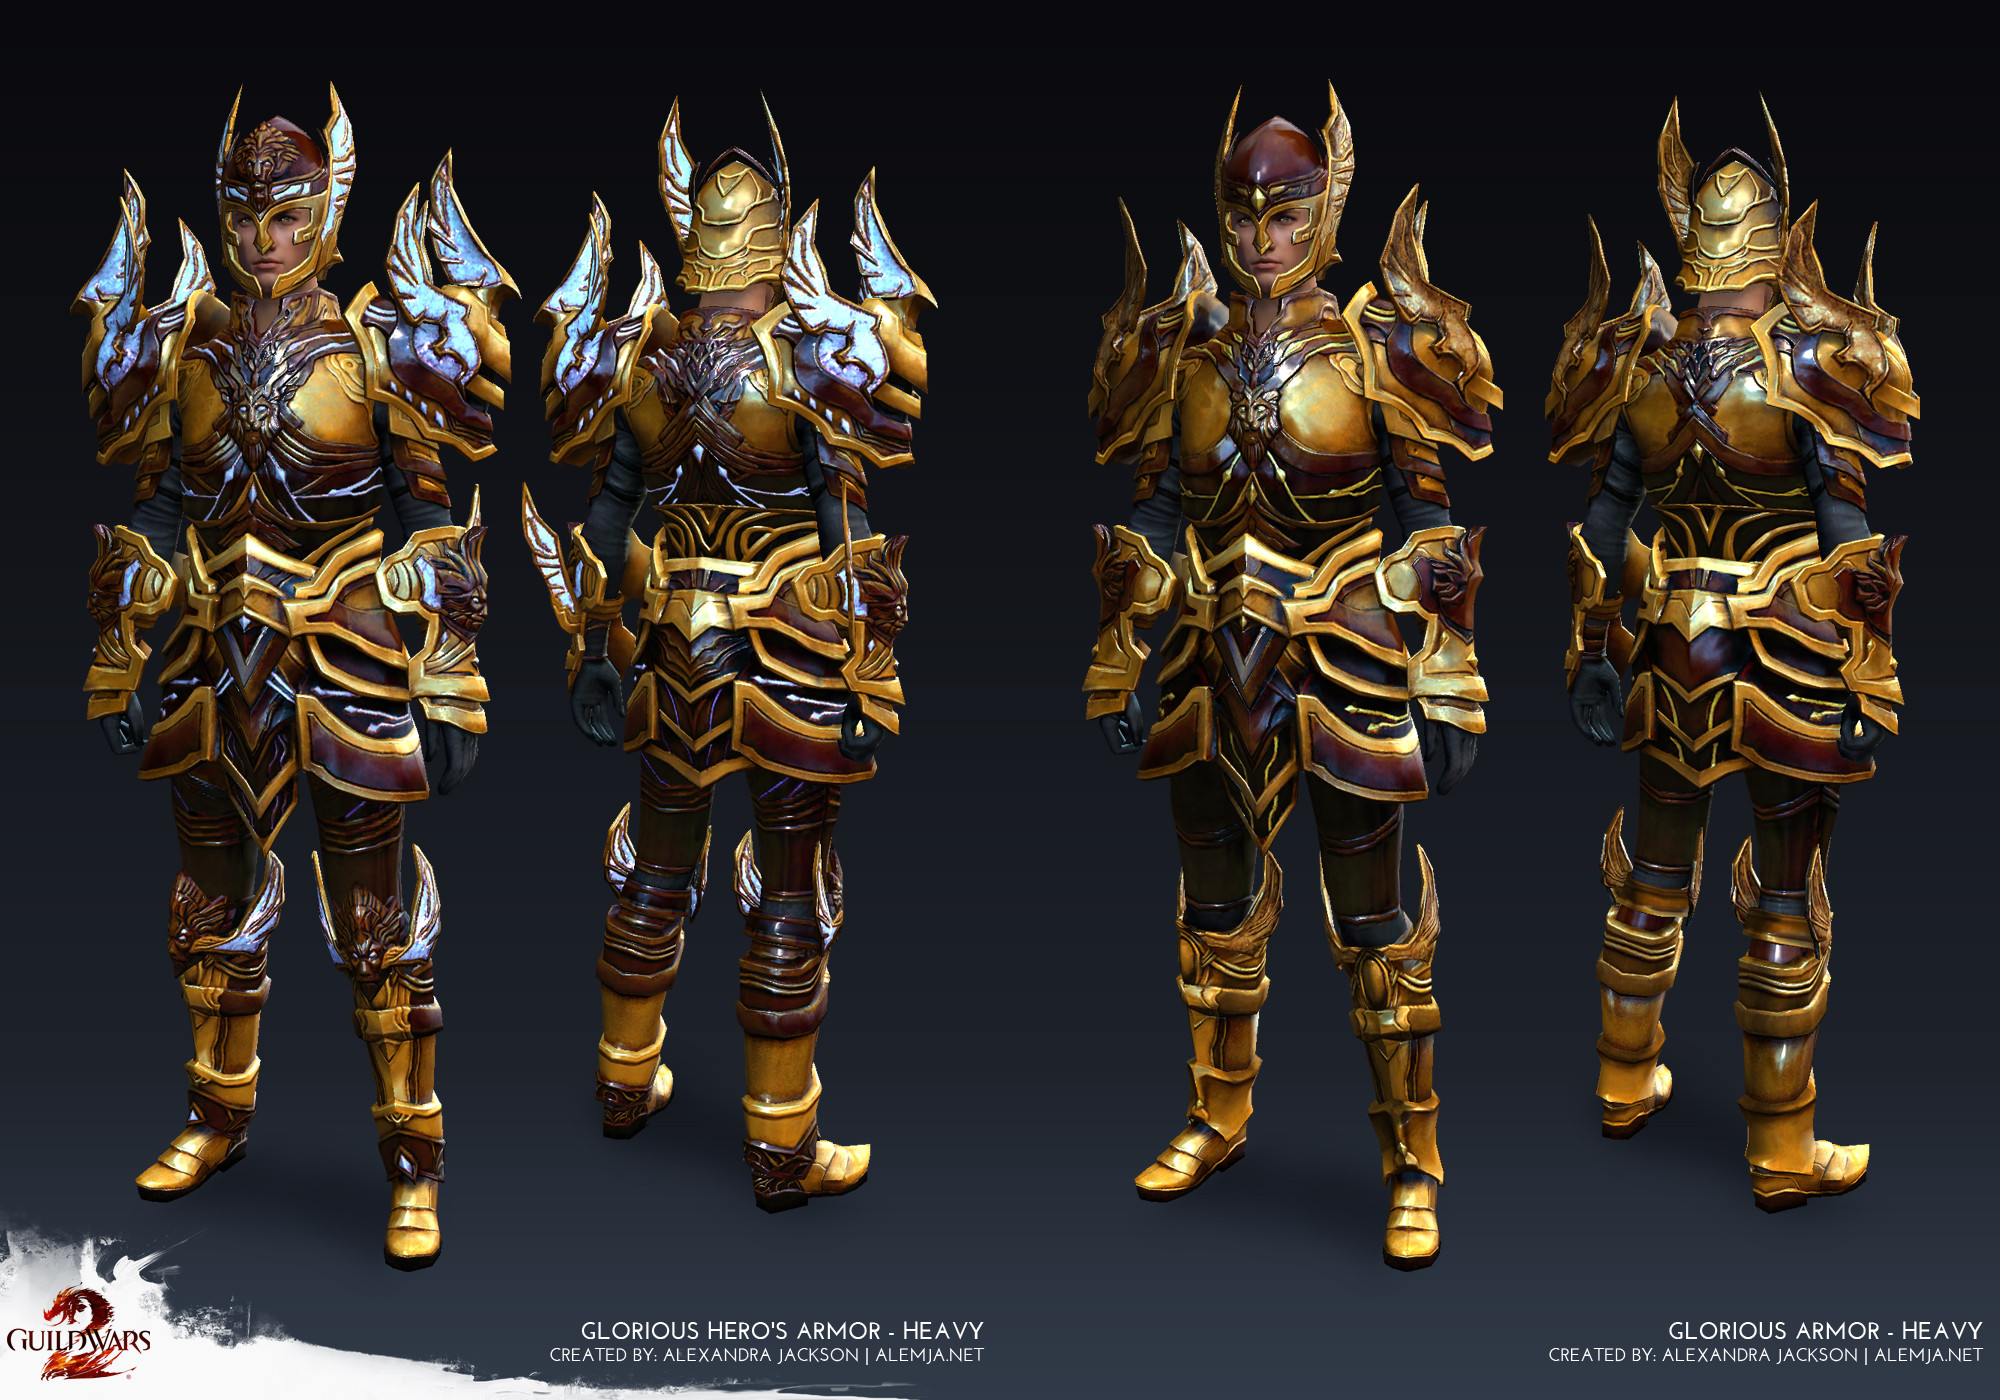 Worked on the armor game ready model and texures. I made sure as much as possible was reused as possible between the 2 tiers. This set was added as a reward tier for PvP